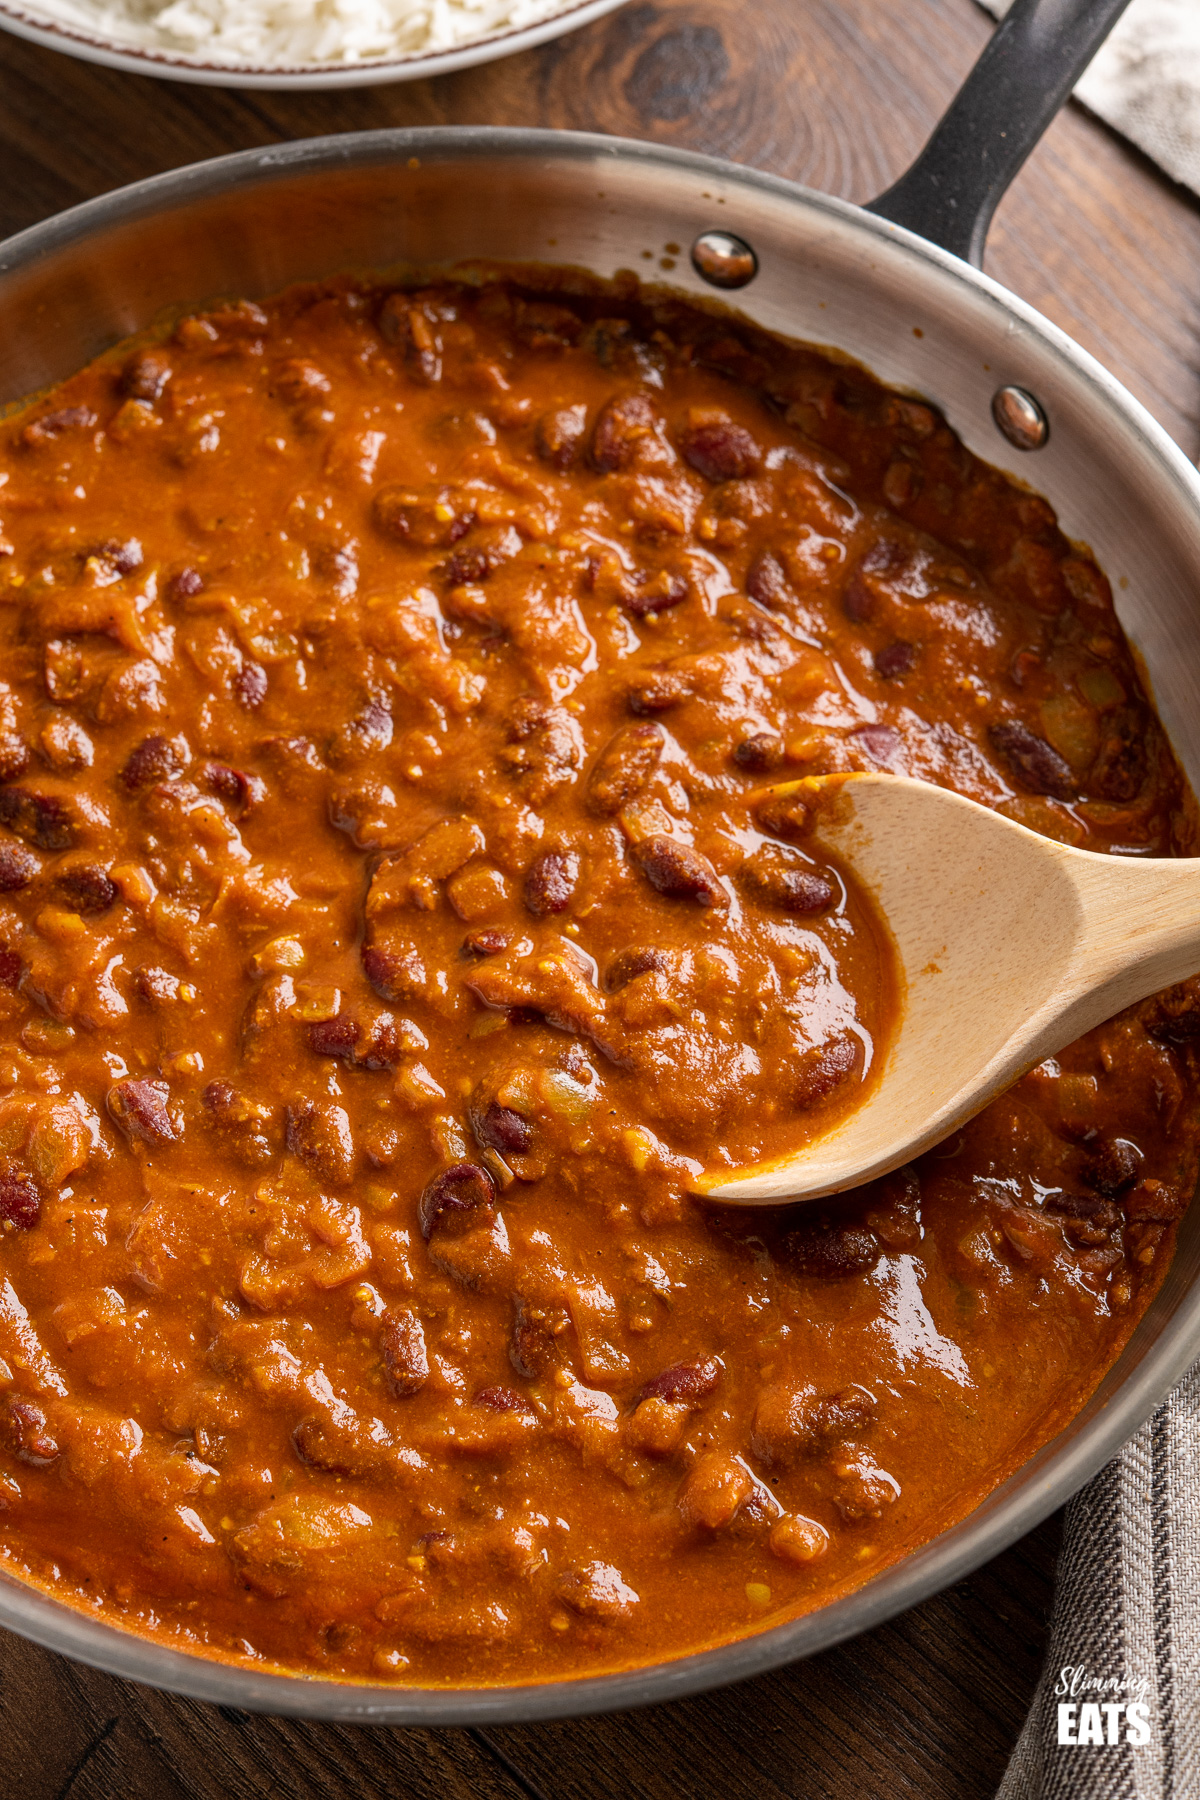 close up of Kidney Bean Curry (Rajma) in stainless steel frying pan with wooden spoon